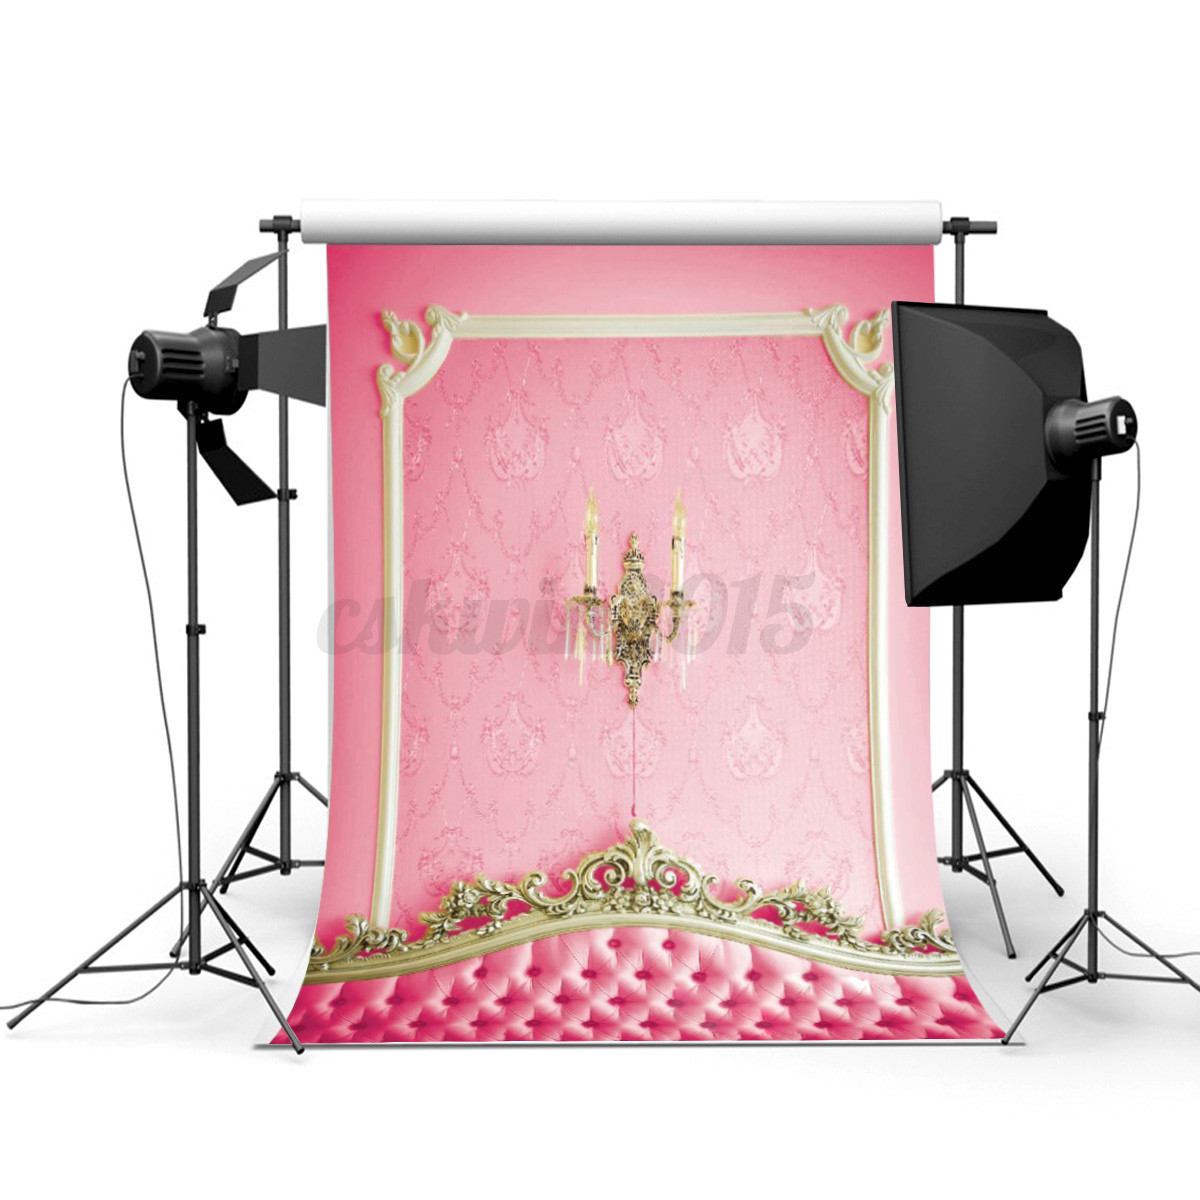 multi style toile de fond backdrop tissu photographie studio photo 90x150cm ebay. Black Bedroom Furniture Sets. Home Design Ideas